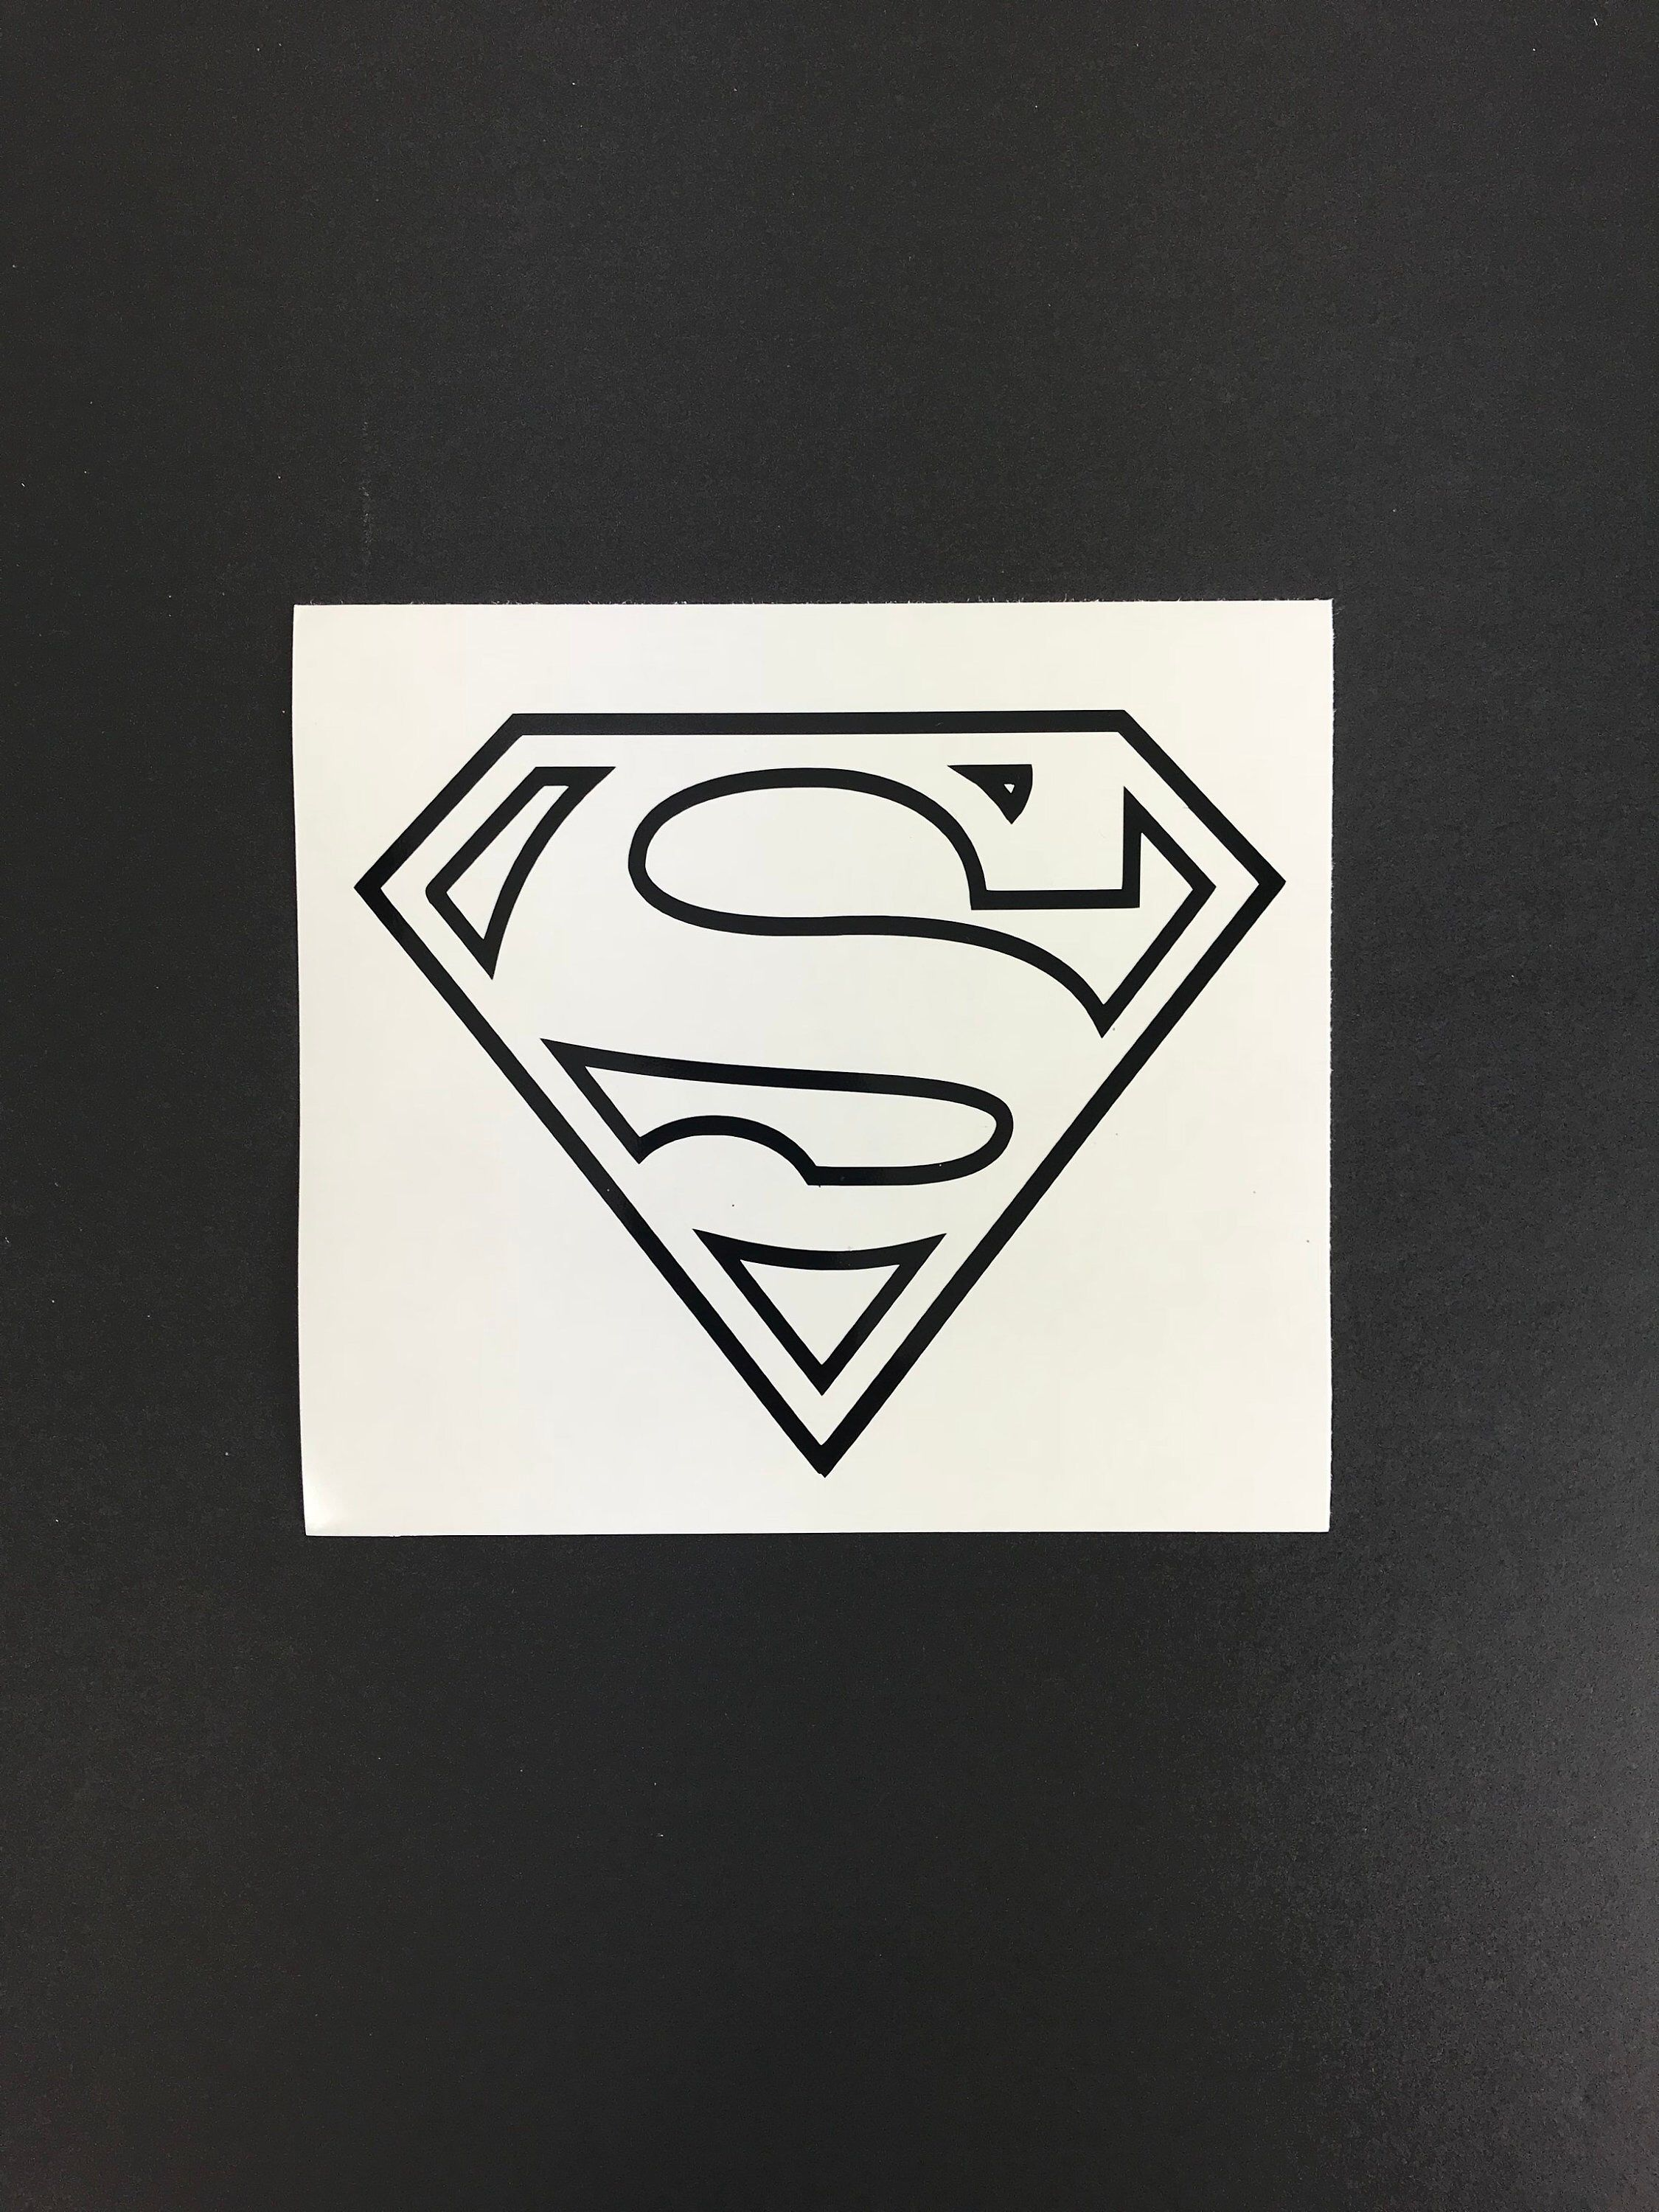 Excited To Share The Latest Addition To My Etsy Shop Superman Car Decal Dc Car Decal Vinyl Car Decal Movie Car Decal Car Decals Vinyl Window Stickers Etsy [ 3000 x 2250 Pixel ]